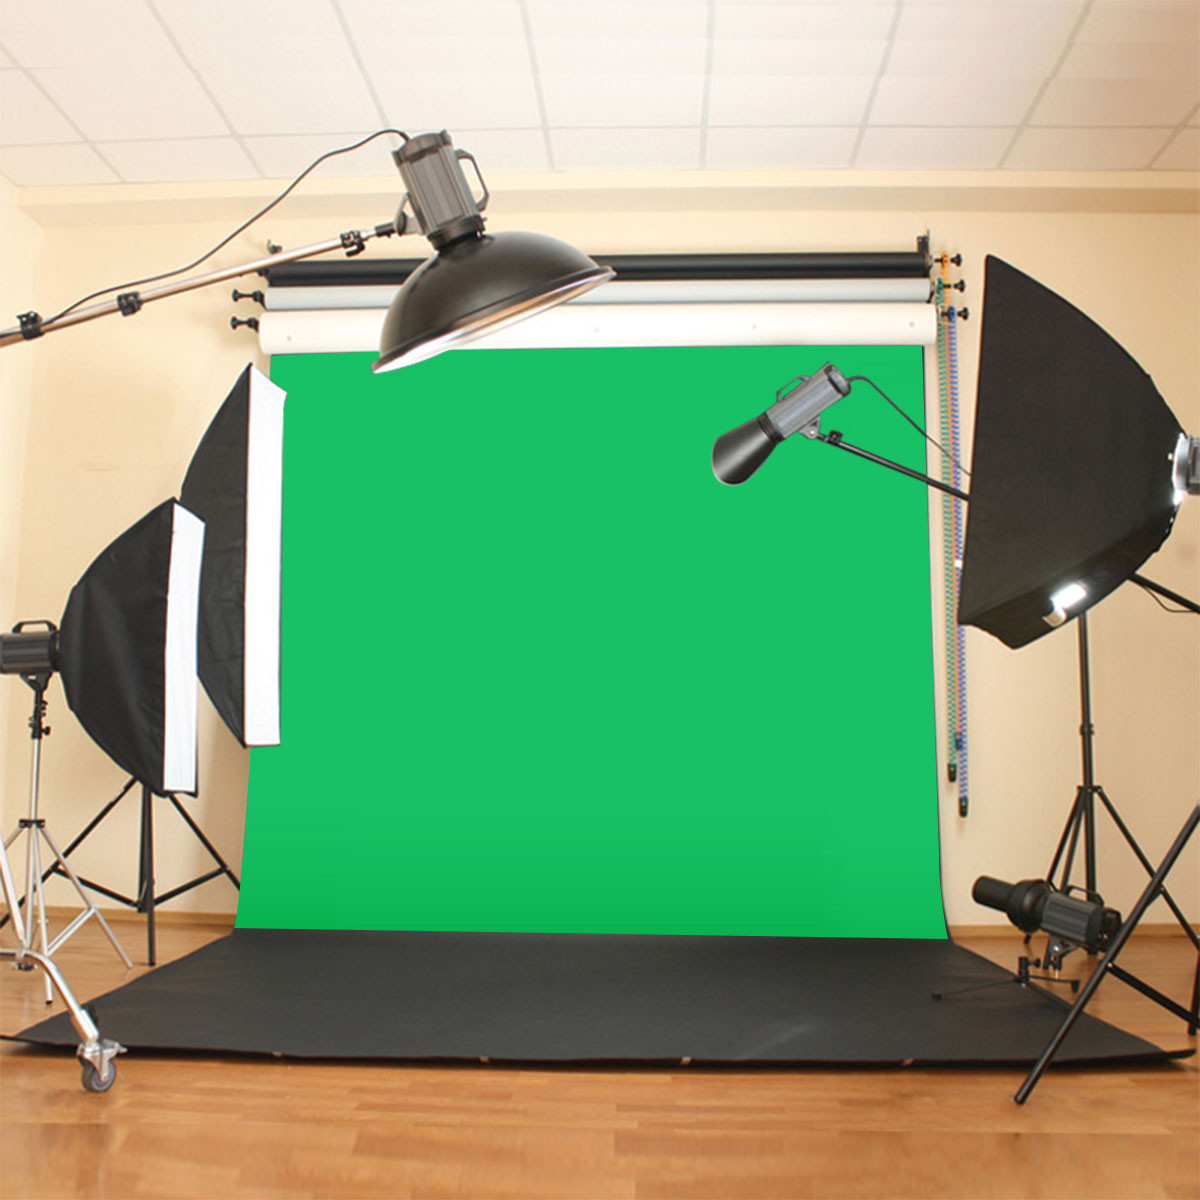 10X10ft/300x300CM Chromakey Green Screen Muslin Green Cloth Screen Backdrop Photo Photography Studio Background 7colors 1 6x5m photography studio green screen chroma key background backdrop for studio photo lighting non woven white backdrop